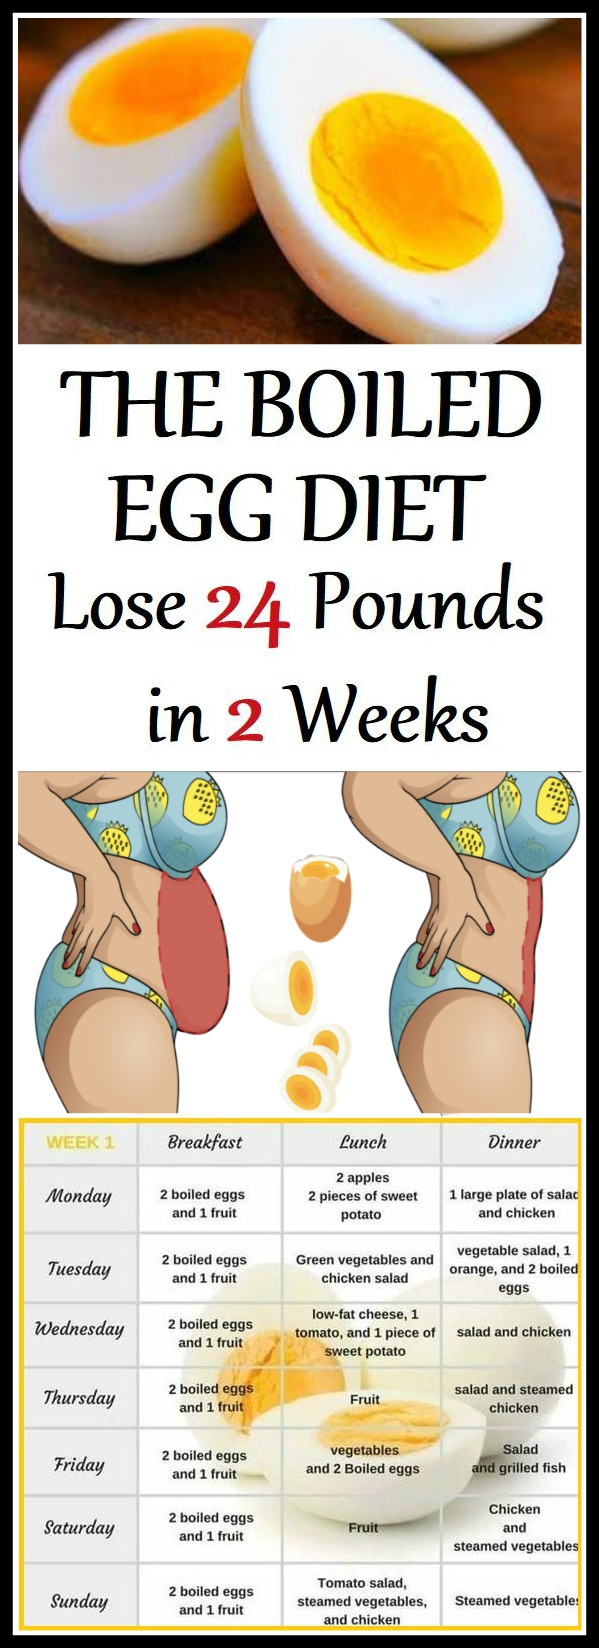 The Boiled Egg Diet Lose 24 Pounds in 2 Weeks The Boiled Egg Diet Lose 24 Pounds in 2 Weeks